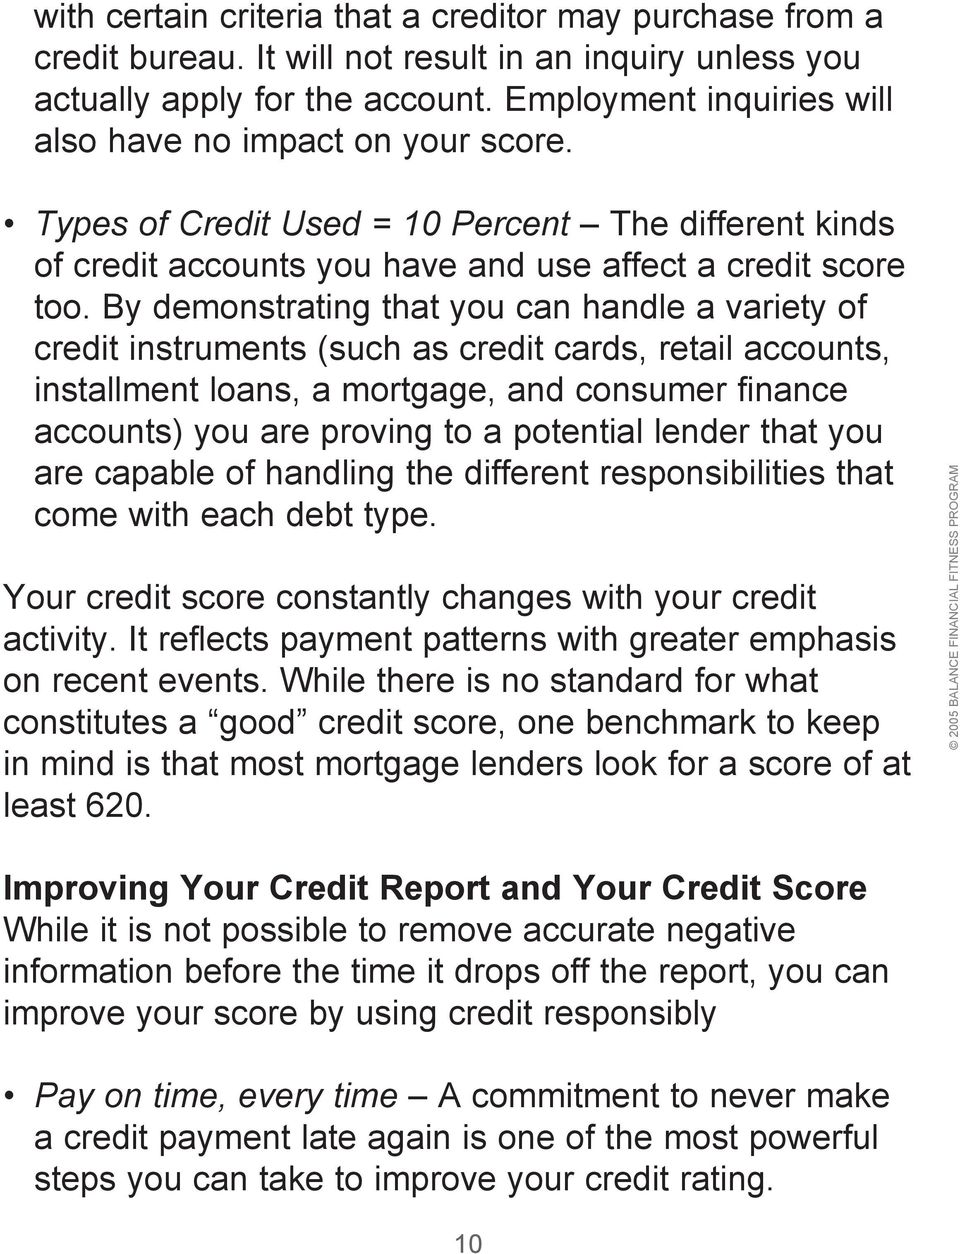 By demonstrating that you can handle a variety of credit instruments (such as credit cards, retail accounts, installment loans, a mortgage, and consumer finance accounts) you are proving to a